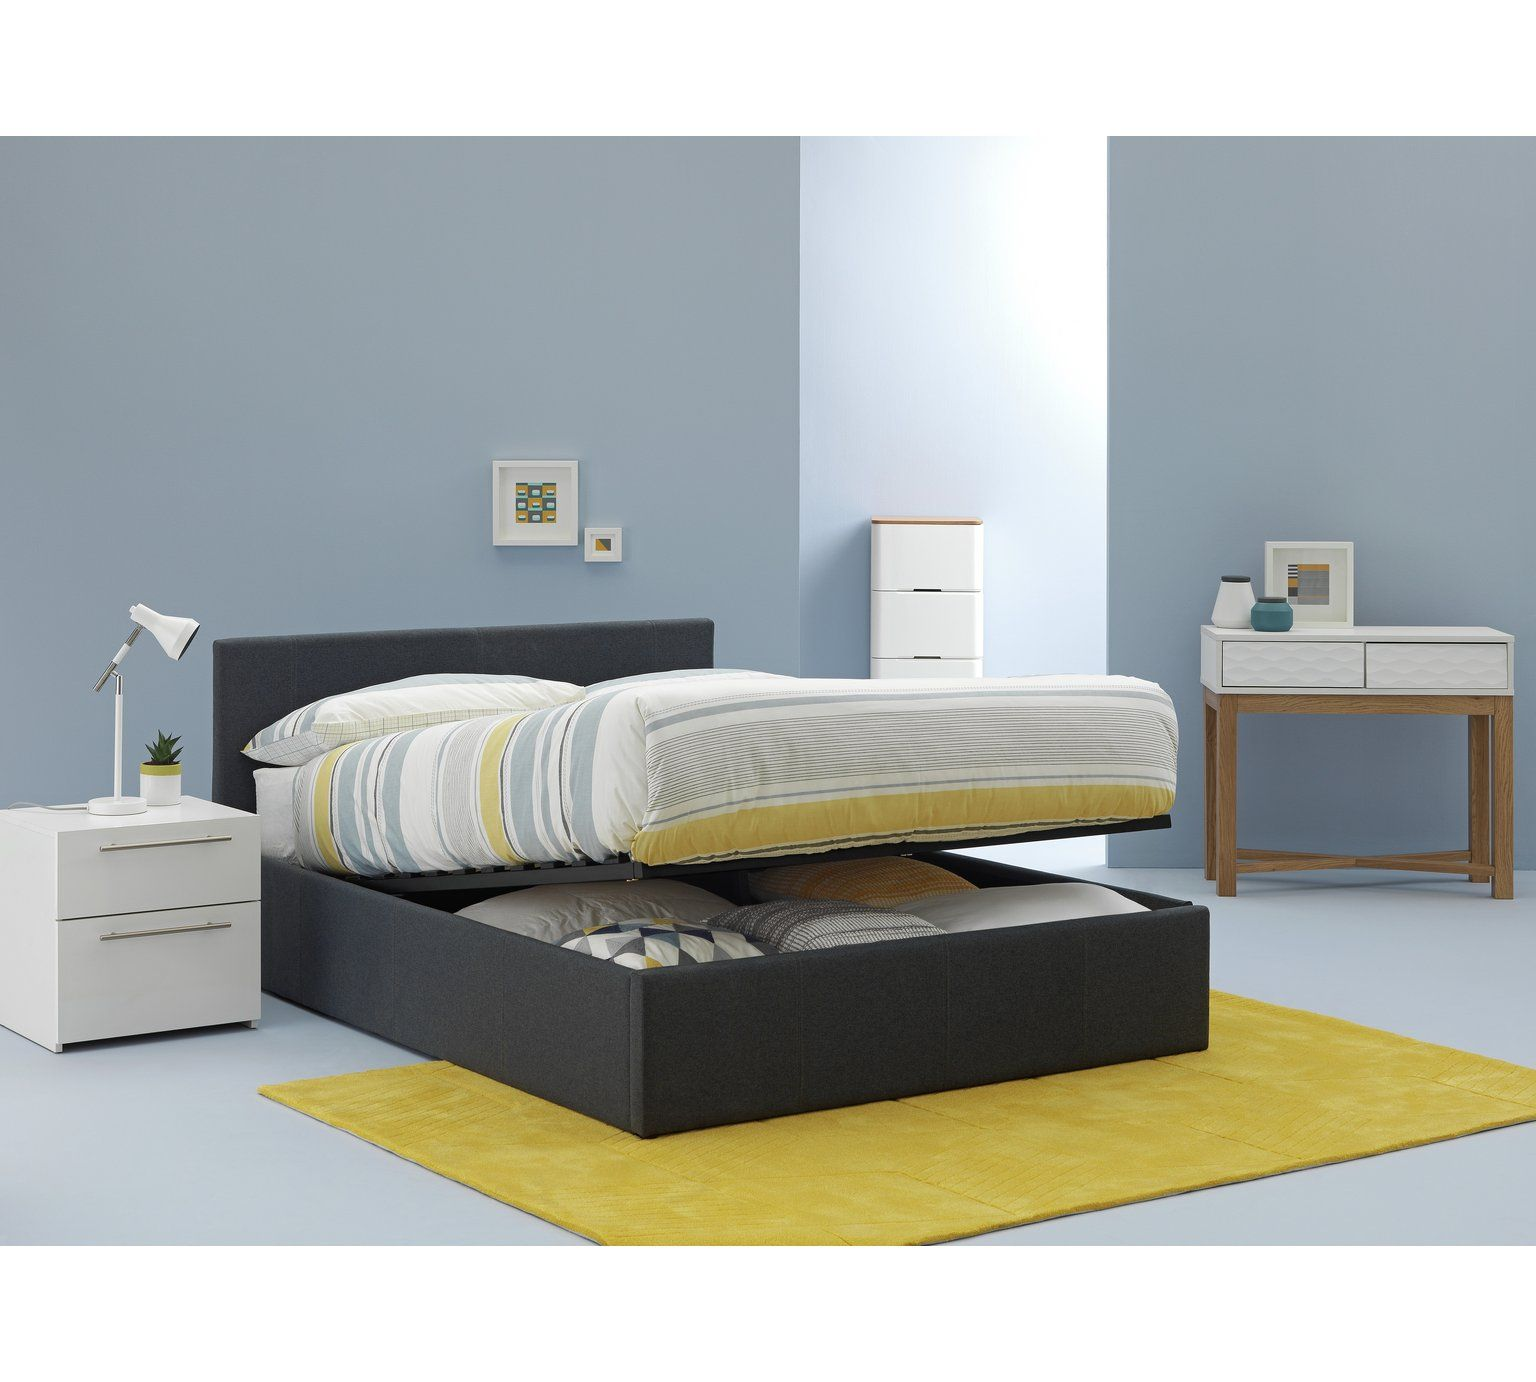 Astounding Buy Hygena Lavendon Kingsize Fabric Ottoman Bed Frame Grey Theyellowbook Wood Chair Design Ideas Theyellowbookinfo